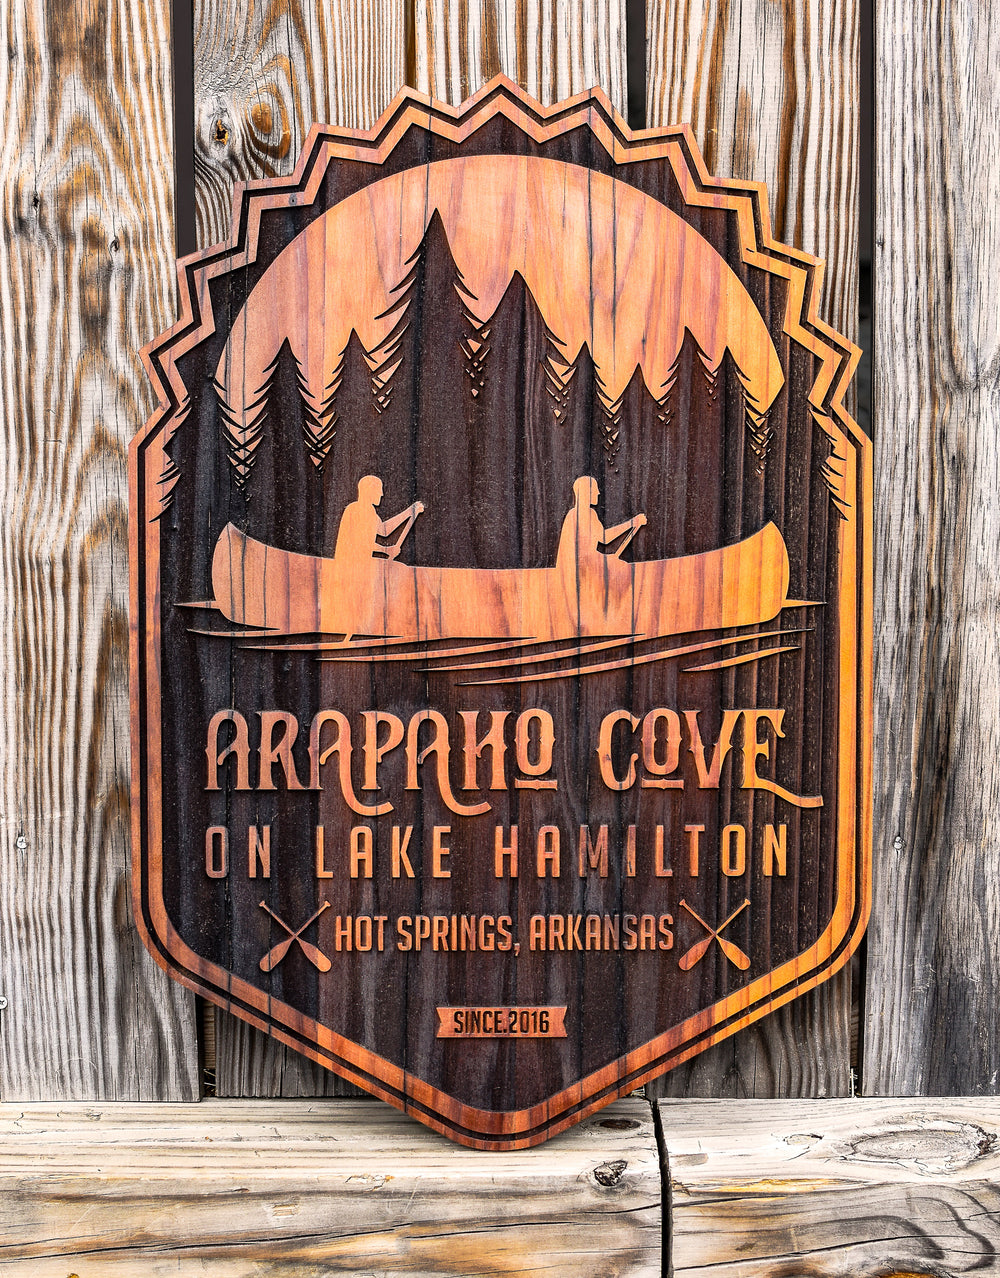 laser etched reclaimed redwood sign for arapaho cove